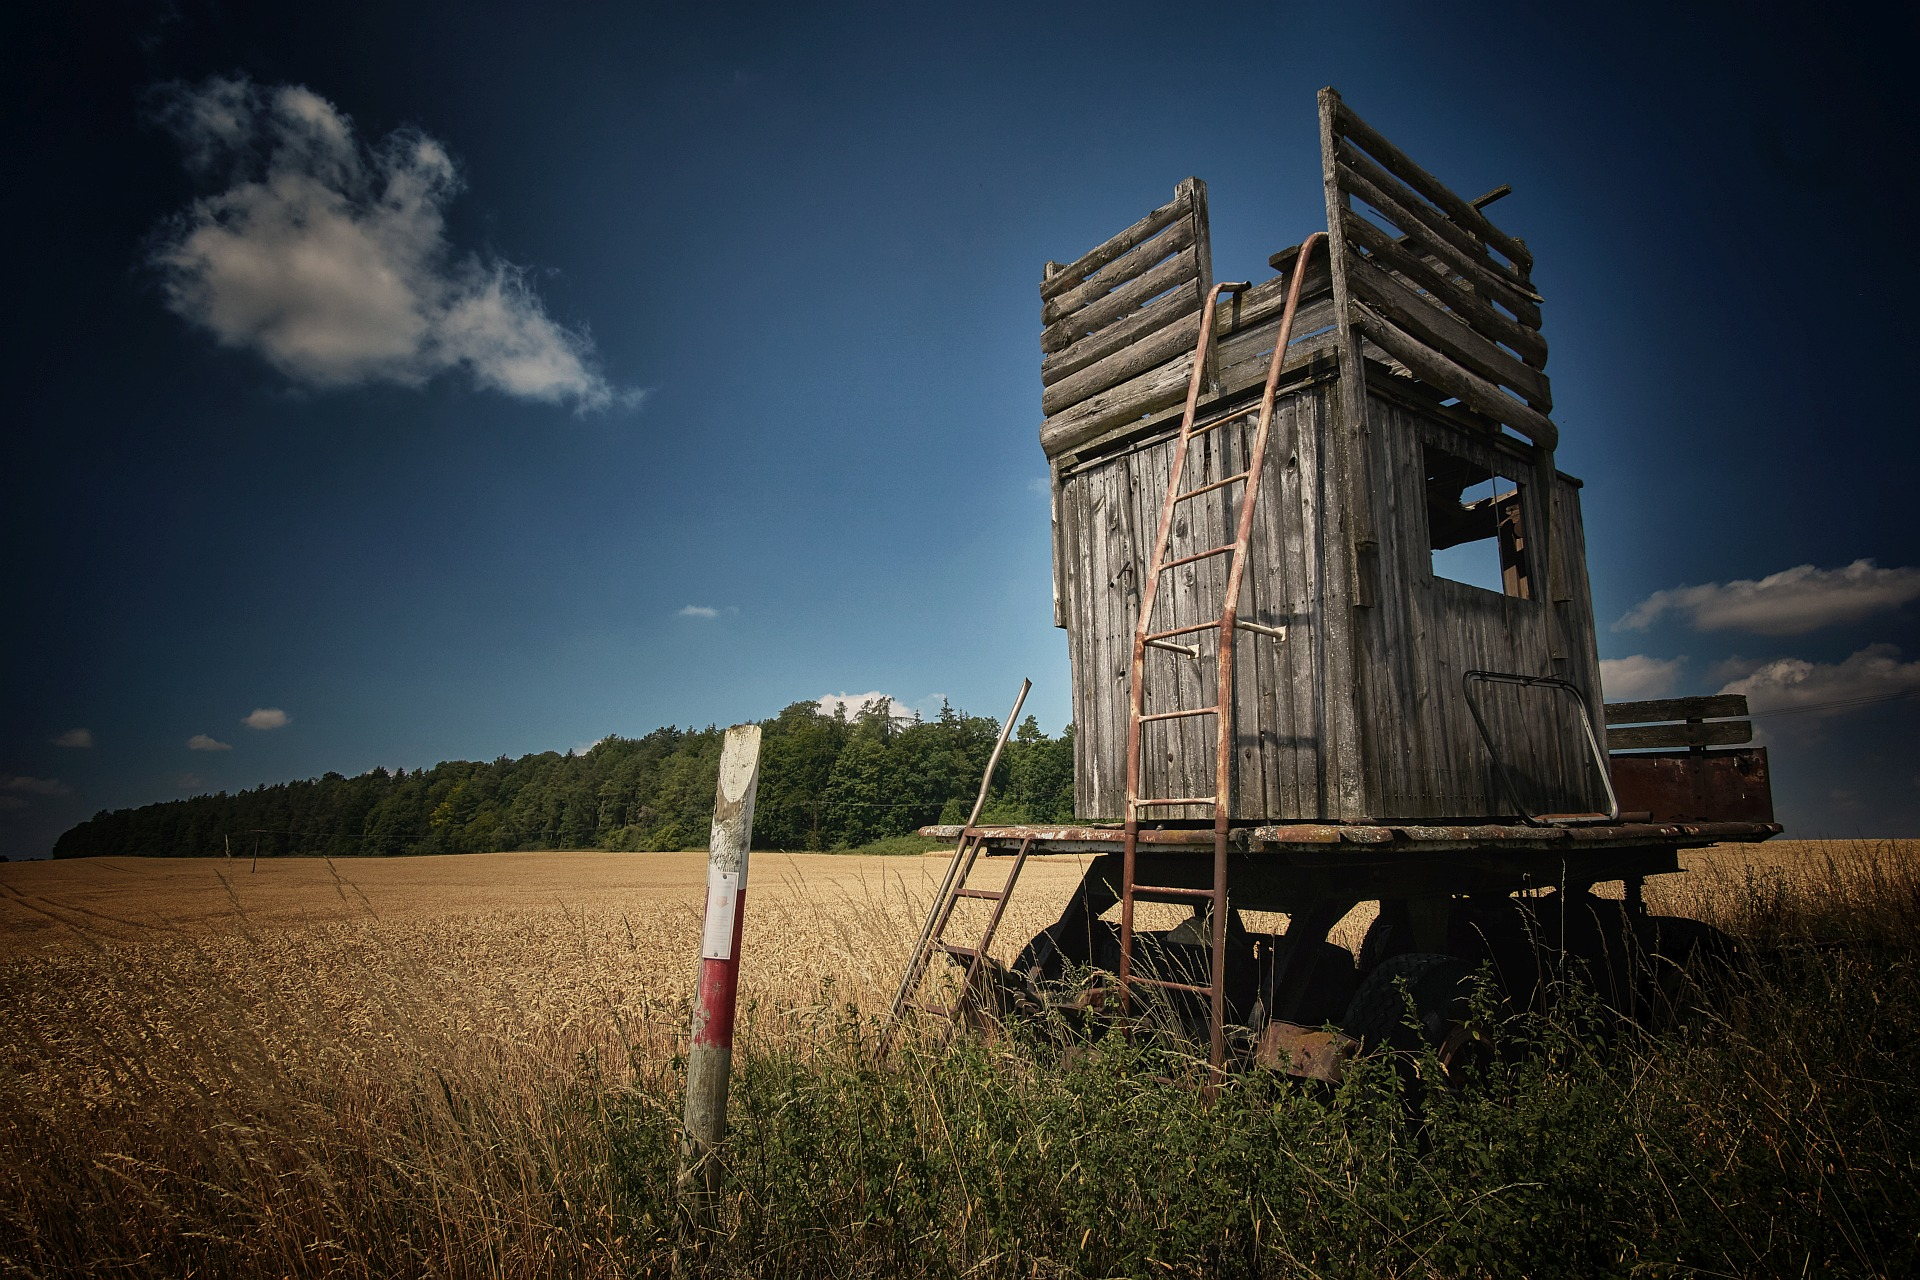 Mobile hunting seat with rusty ladder